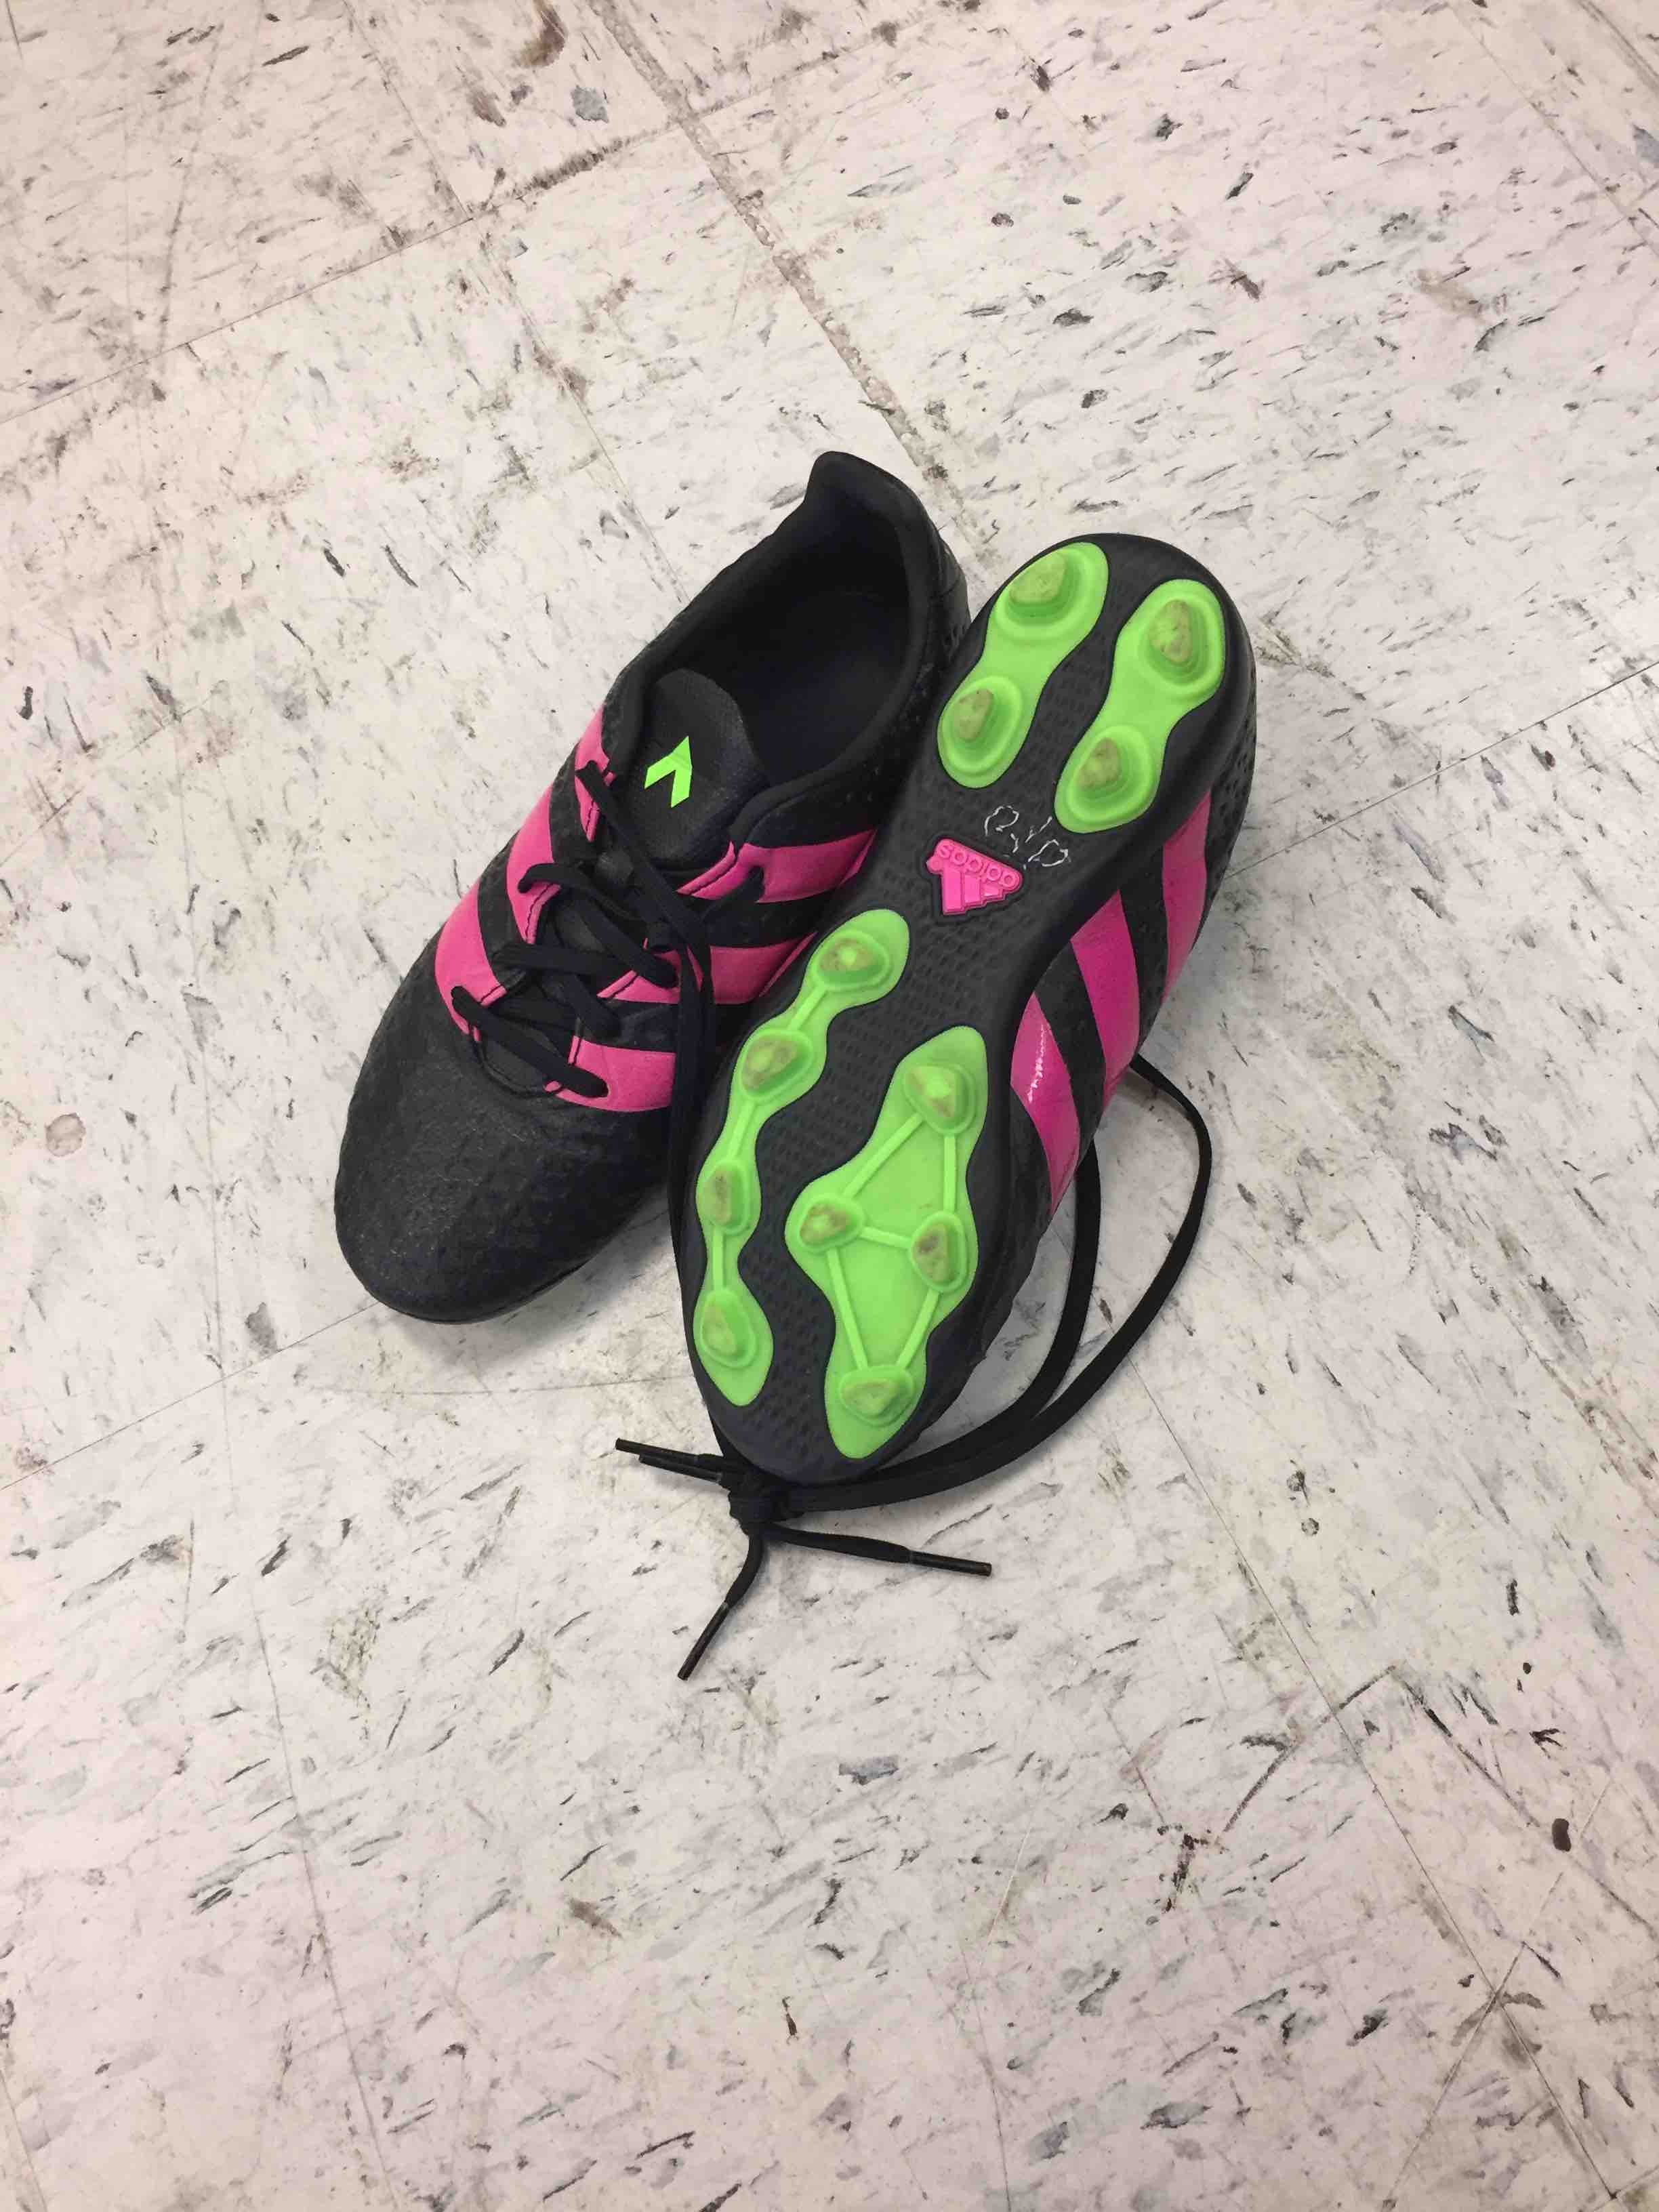 Adidas girls cleats size 4